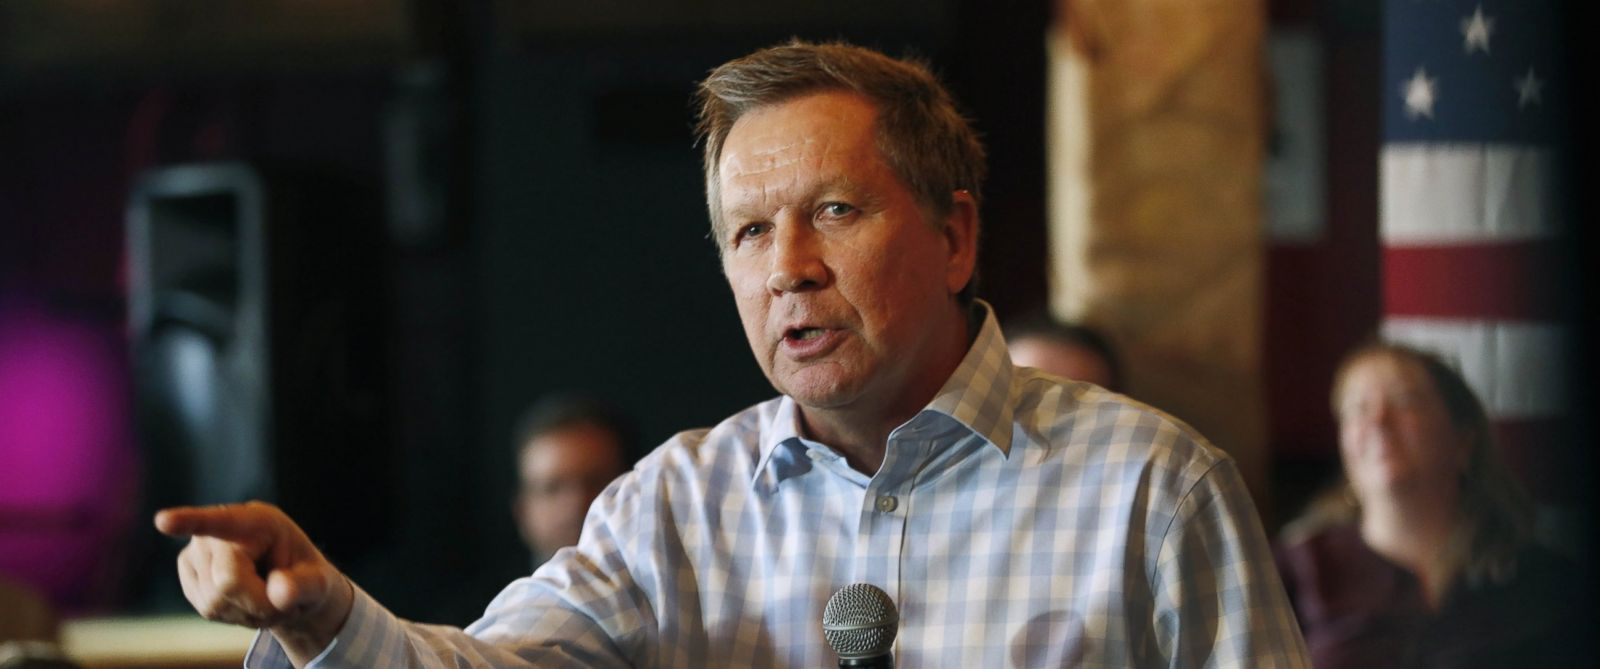 PHOTO: Republican presidential candidate, Ohio Gov. John Kasich speaks to voters during a campaign stop at a music club tavern called the Stone Church, Jan. 25, 2016, in Newmarket, N.H.